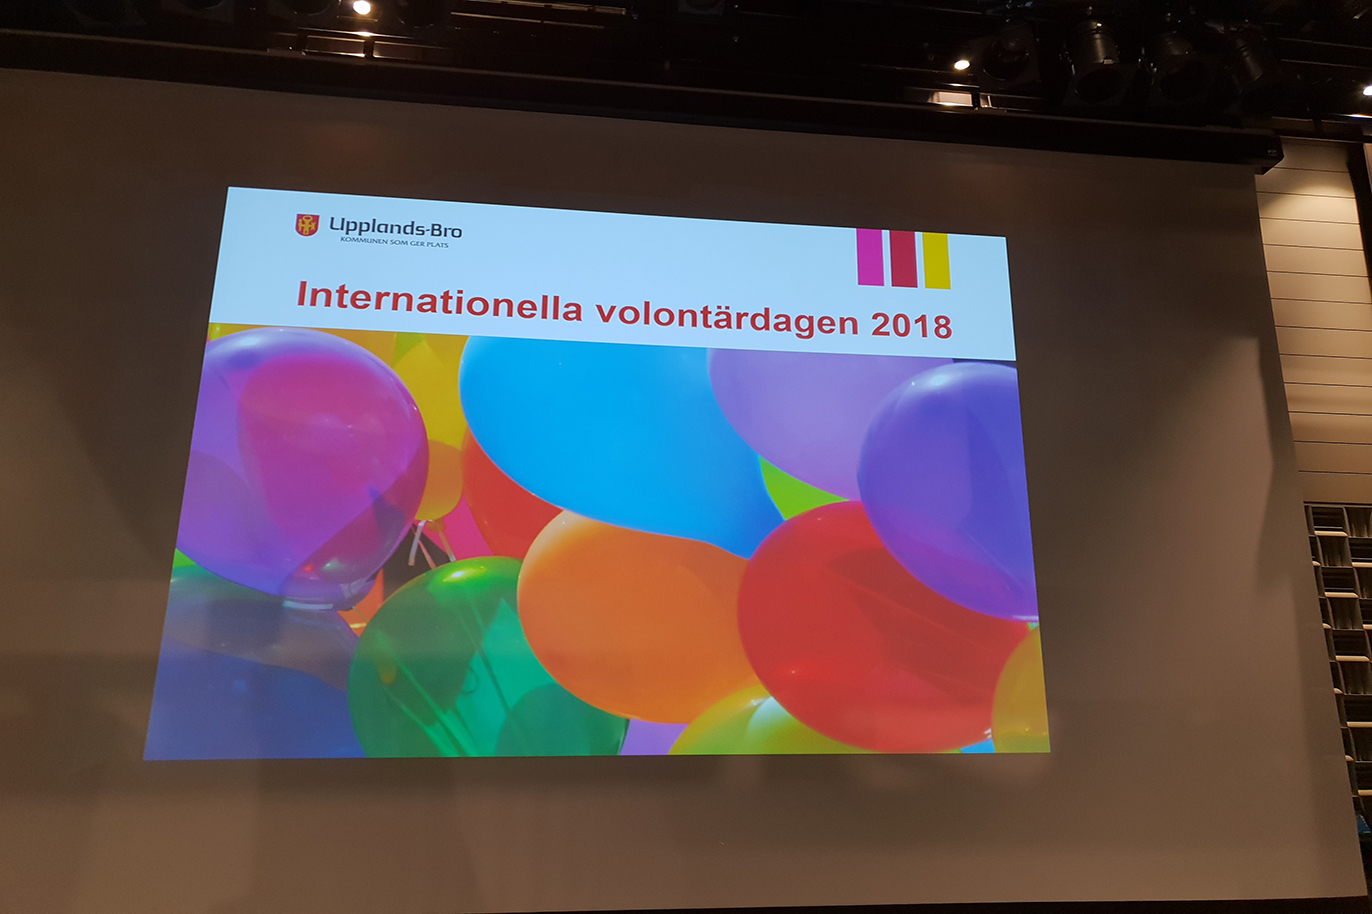 Internationella volontärdagen 2018.